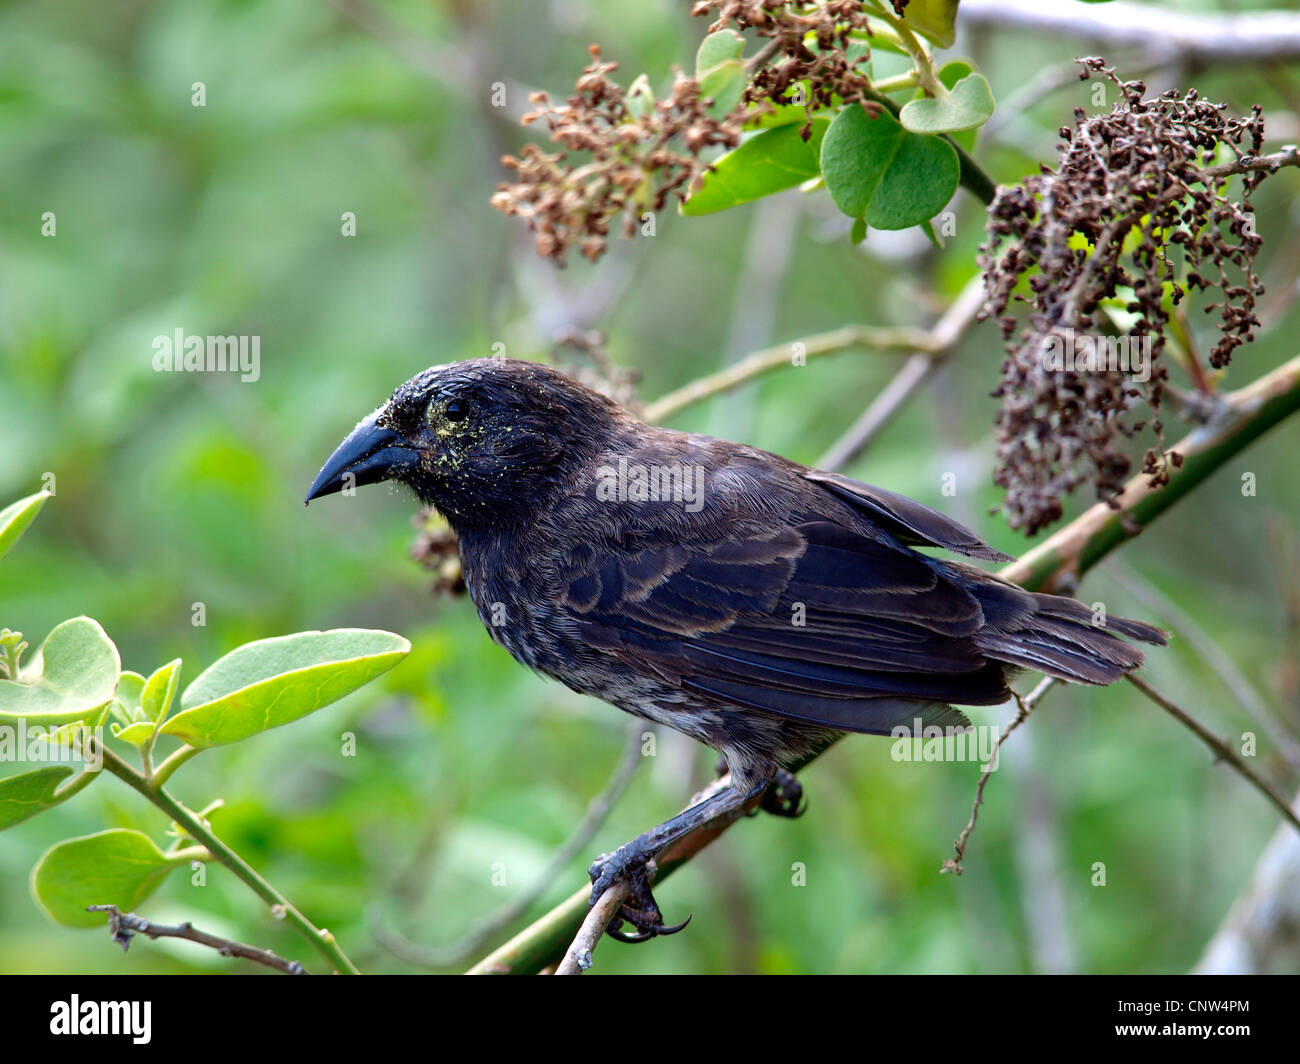 darwin finch, Ecuador, Galapagos Islands - Stock Image